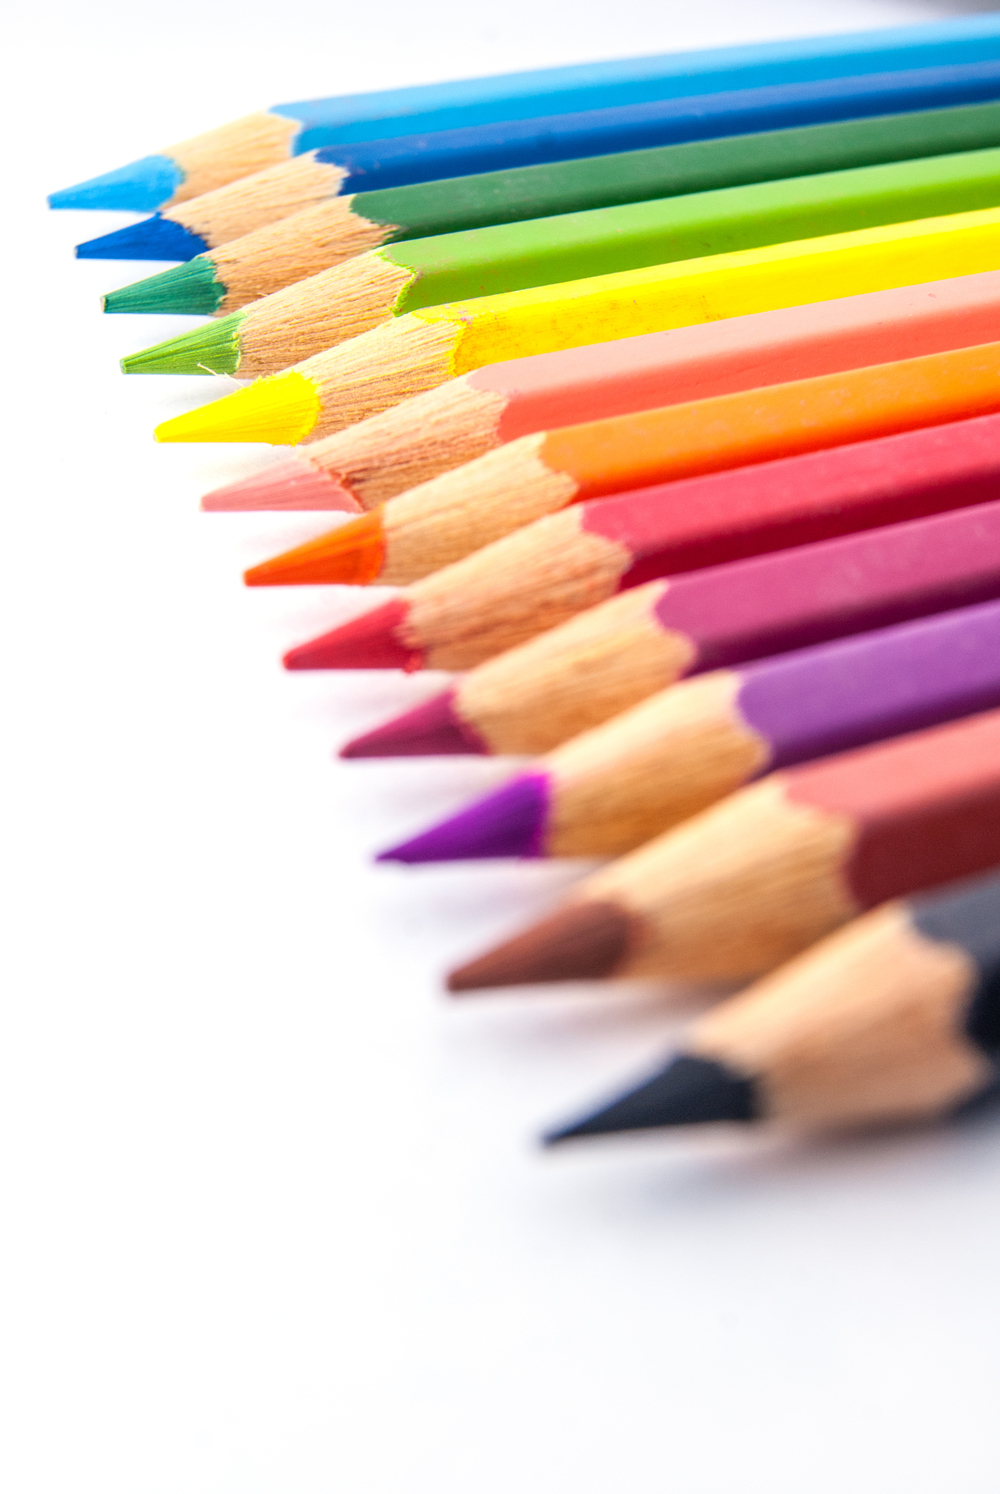 bigstock-Colour-pencil-in-row-43723921.jpg